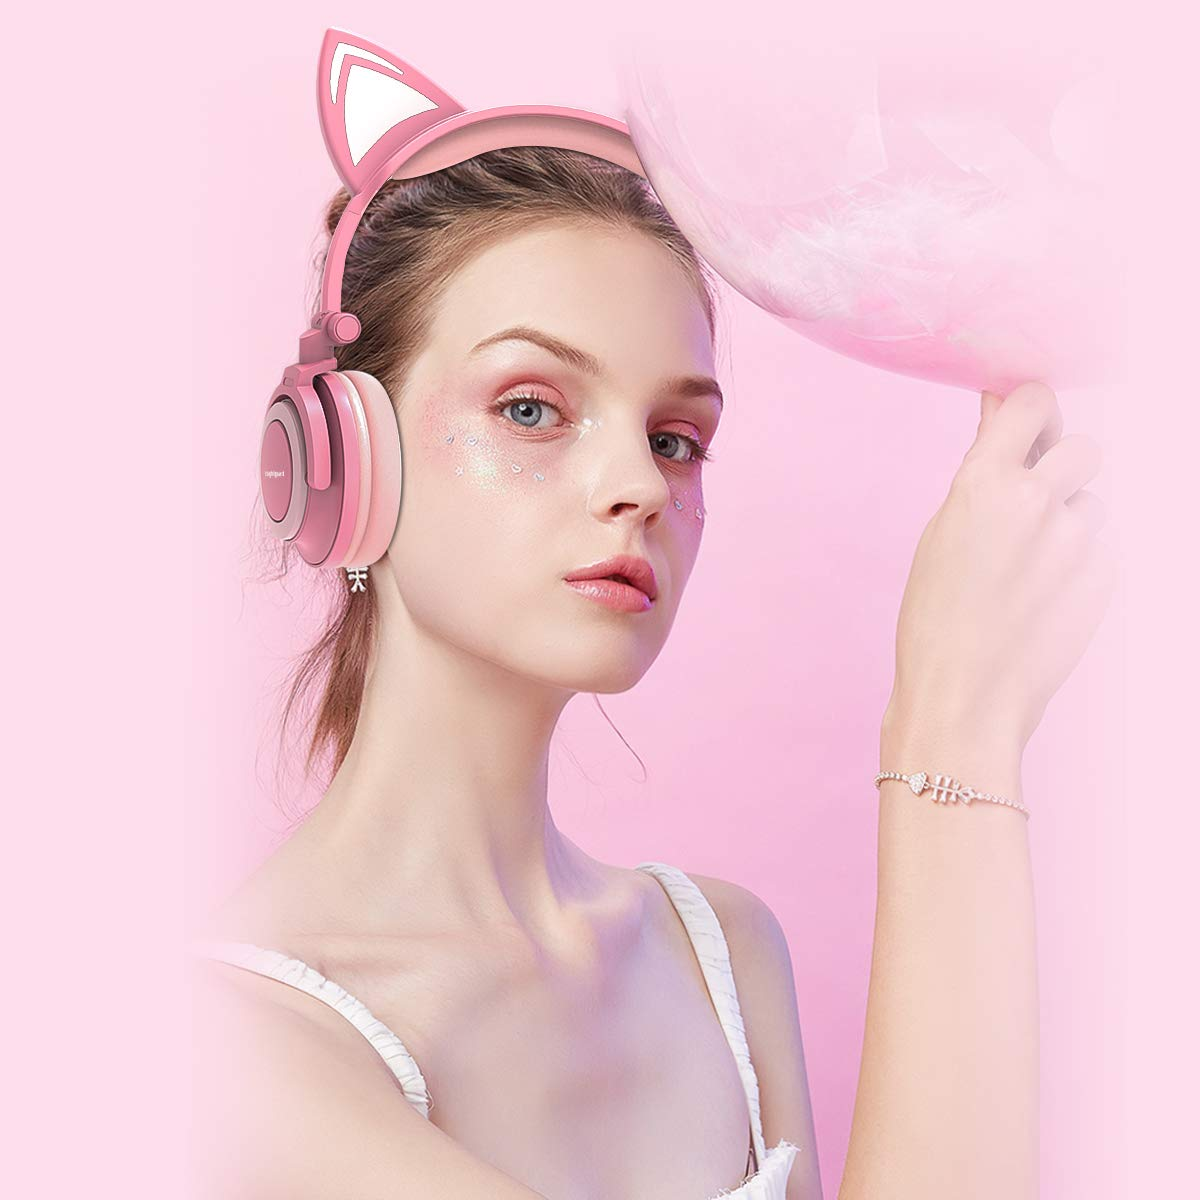 Isightguard Kids Headphones, Wired Headphones On Ear, Cat Ear Headphones with LED for Girls, 3.5mm Audio Jack for Cell Phone,Pink by isightguard (Image #7)